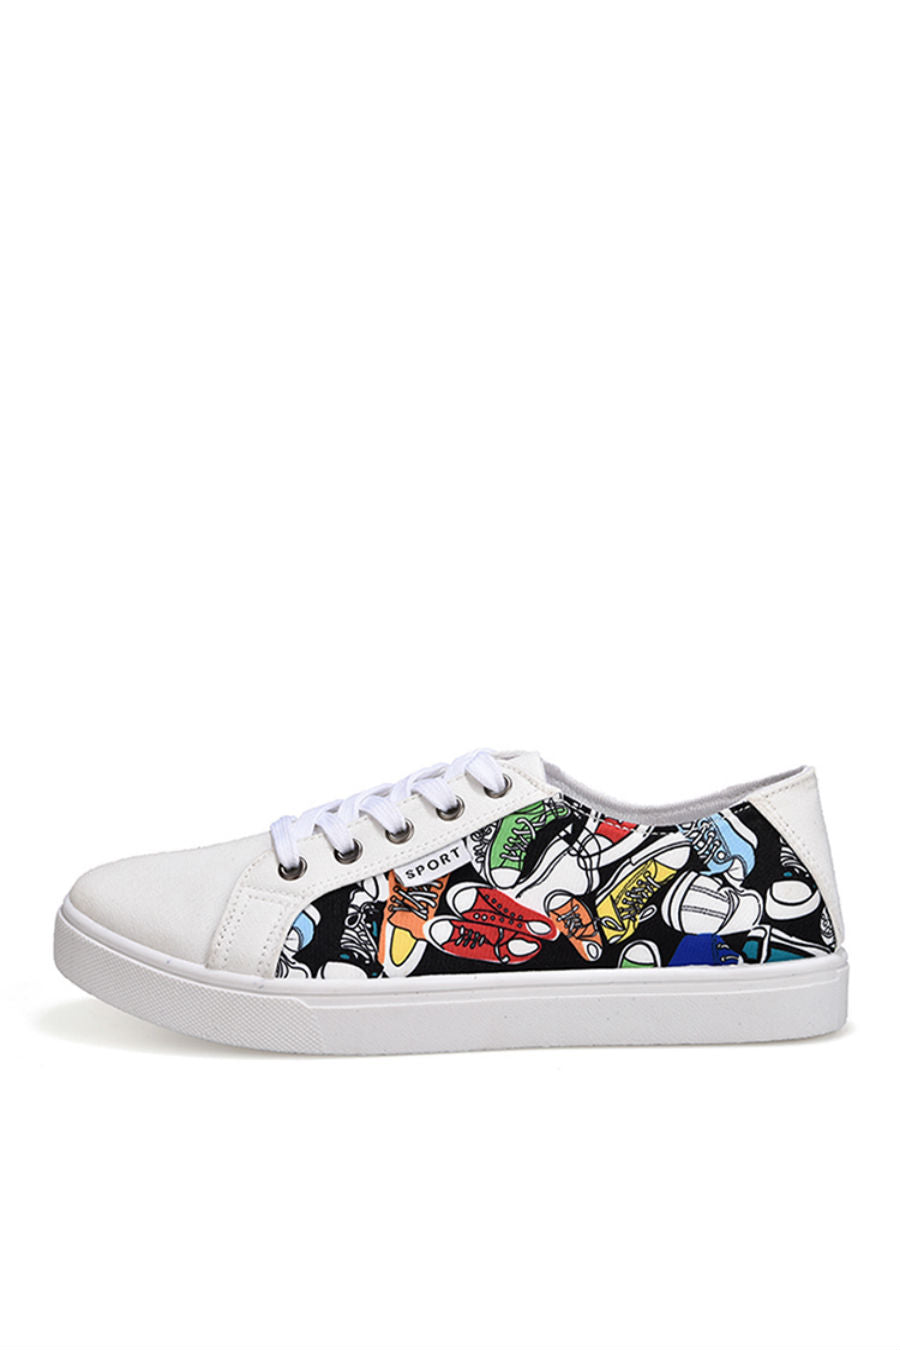 White Graffiti Sneakers